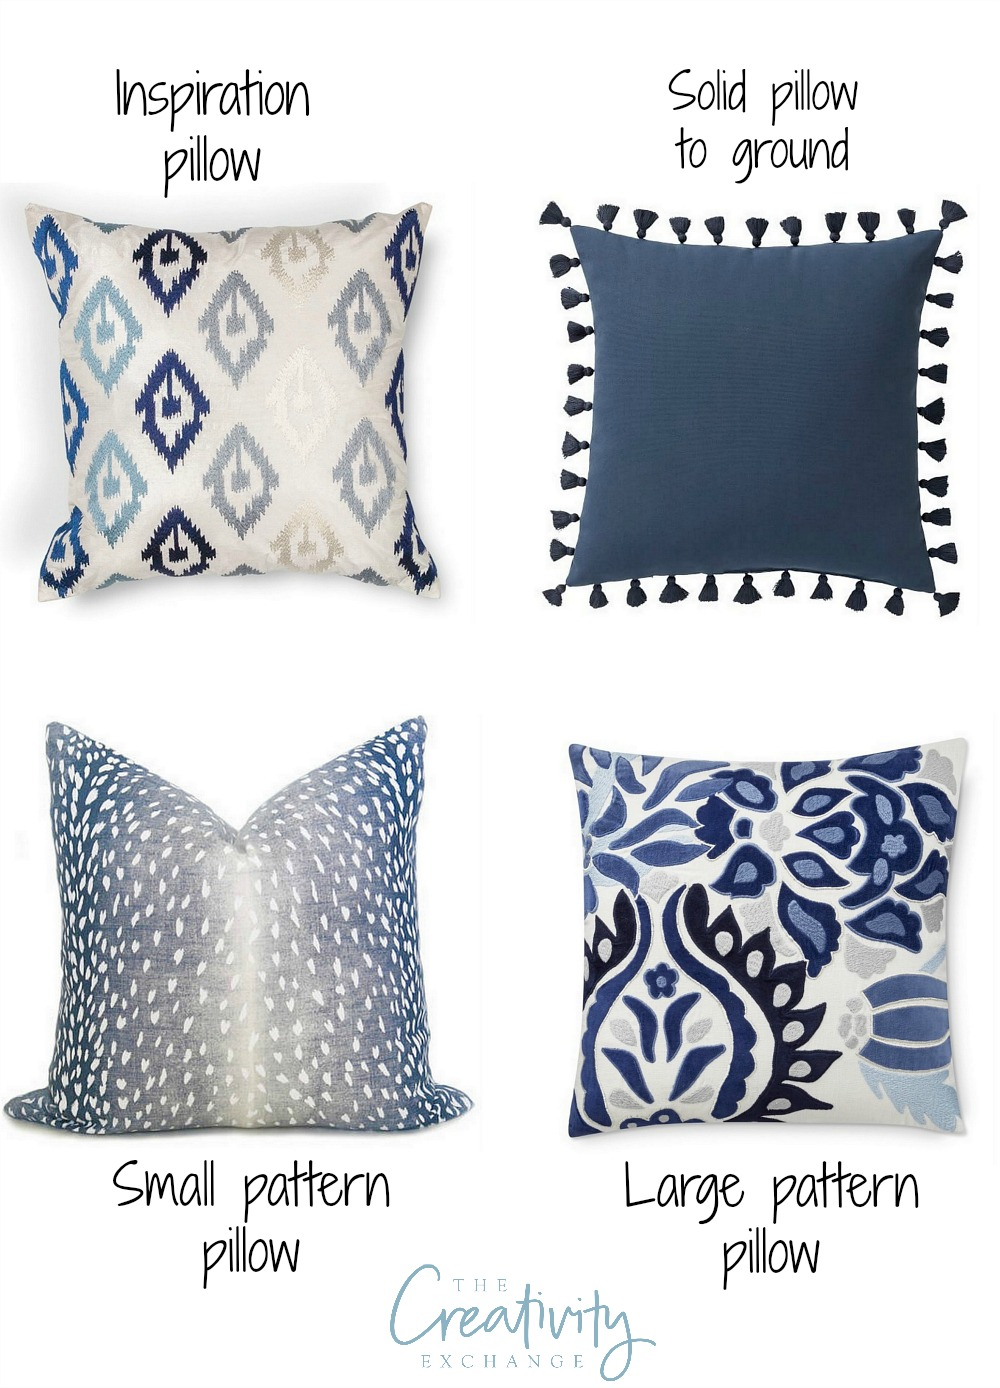 How to layer and mix pillow patterns and colors